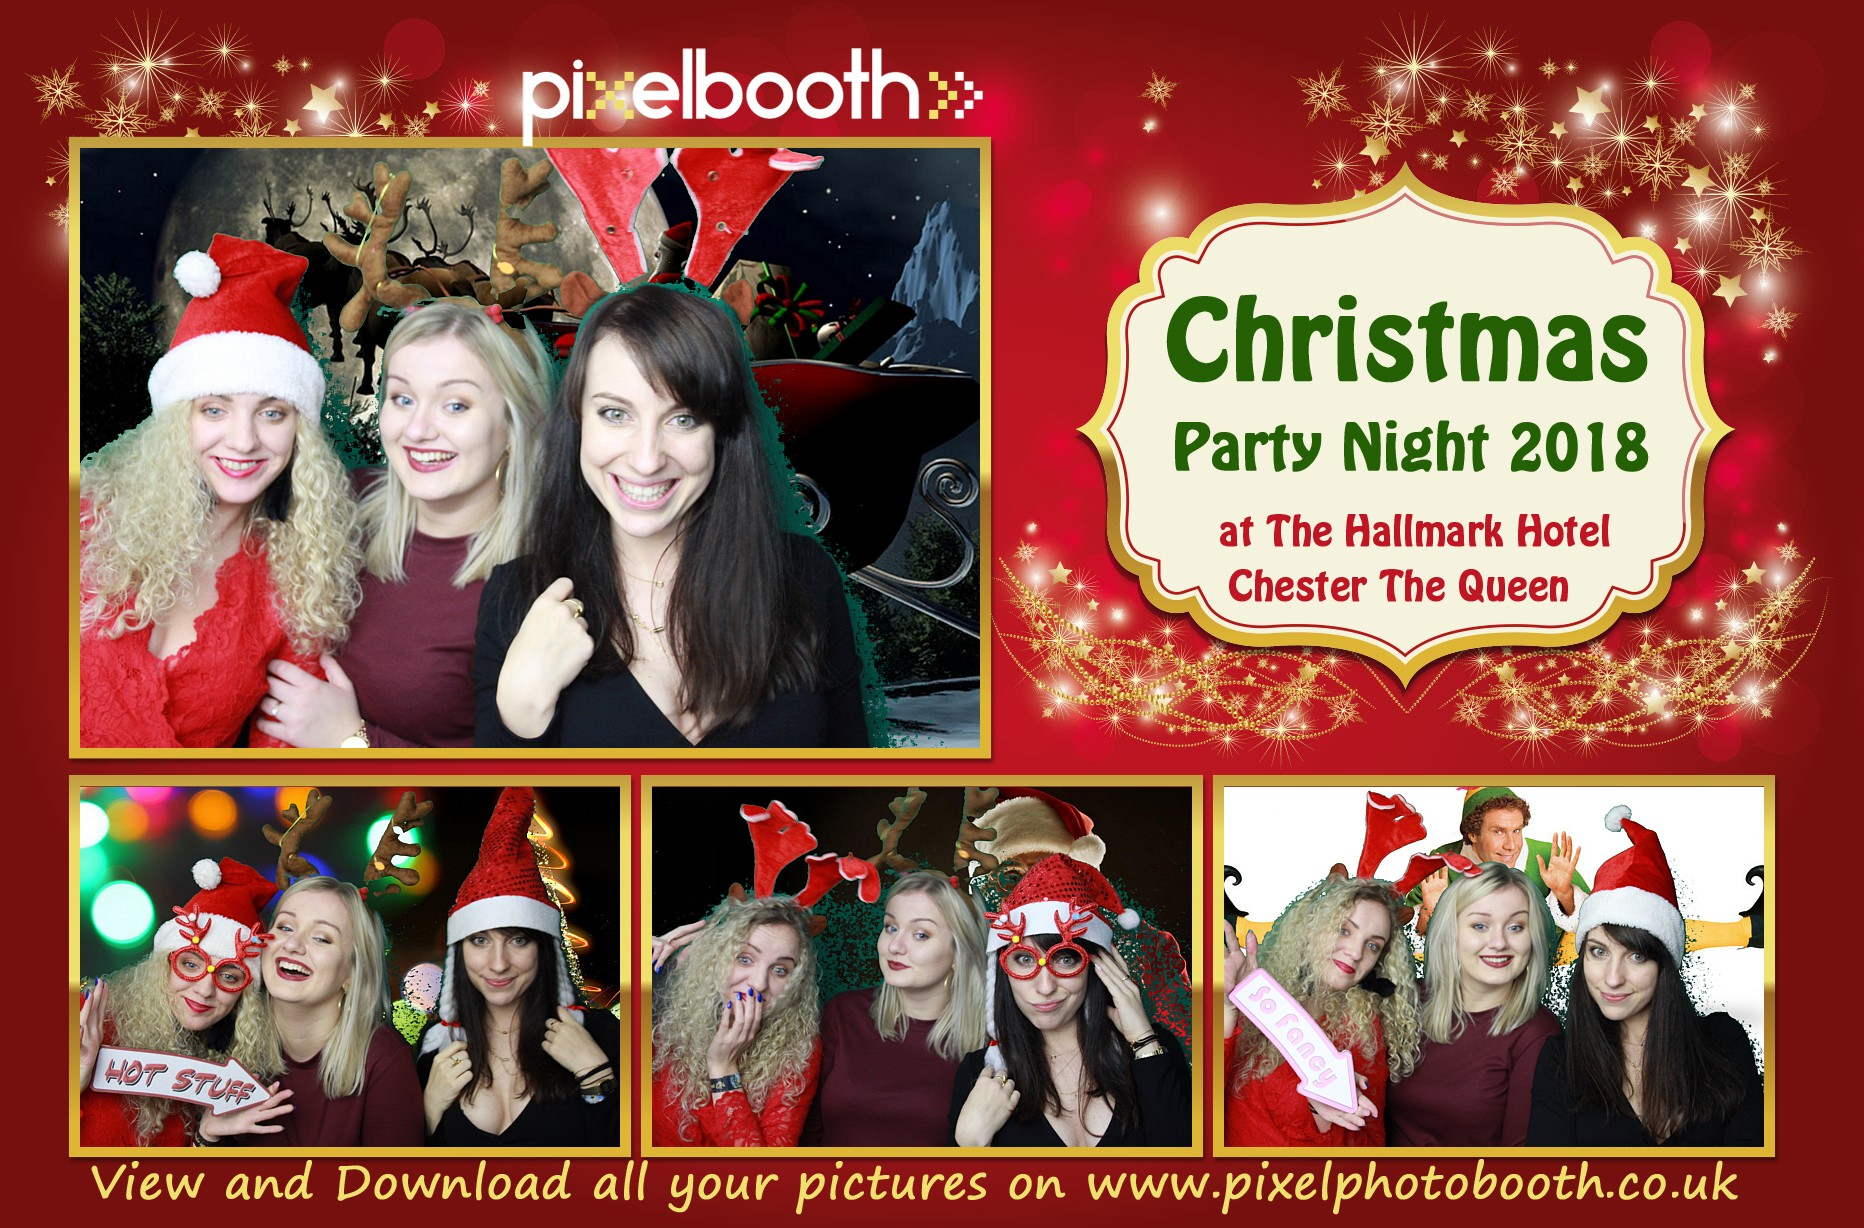 21st Dec 2018: Queen Hotel Christmas Party Night